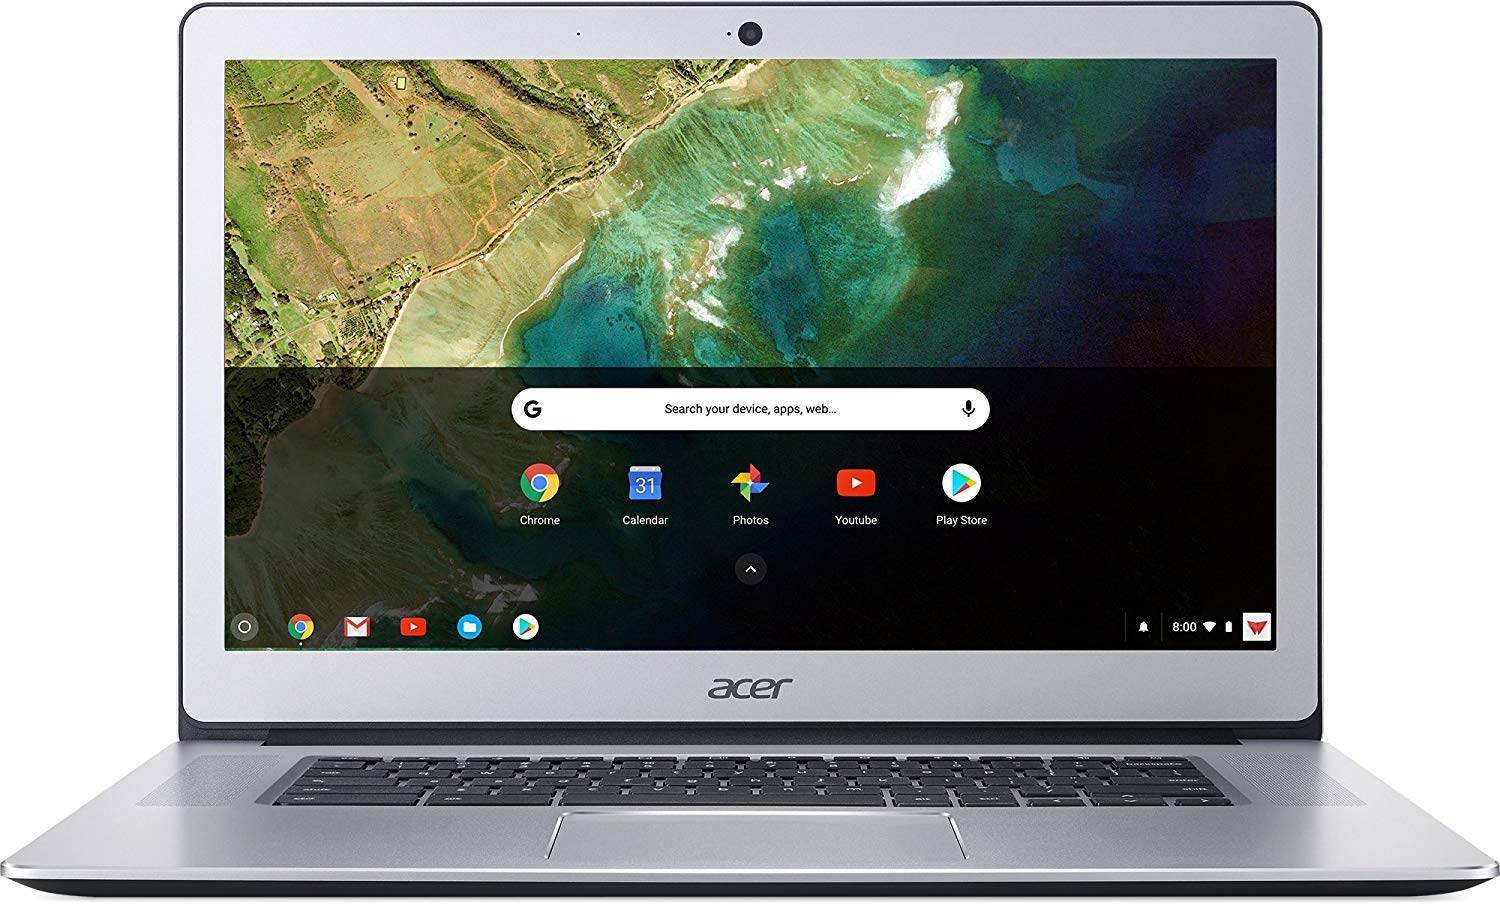 Acer Chromebook 15, Intel Celeron N3350, 15.6'' Full HD Touch, 4GB LPDDR4, 32GB Storage, Google Chrome, Pure Silver, CB515-1HT-C2AE, 15-15.99 inches by Acer